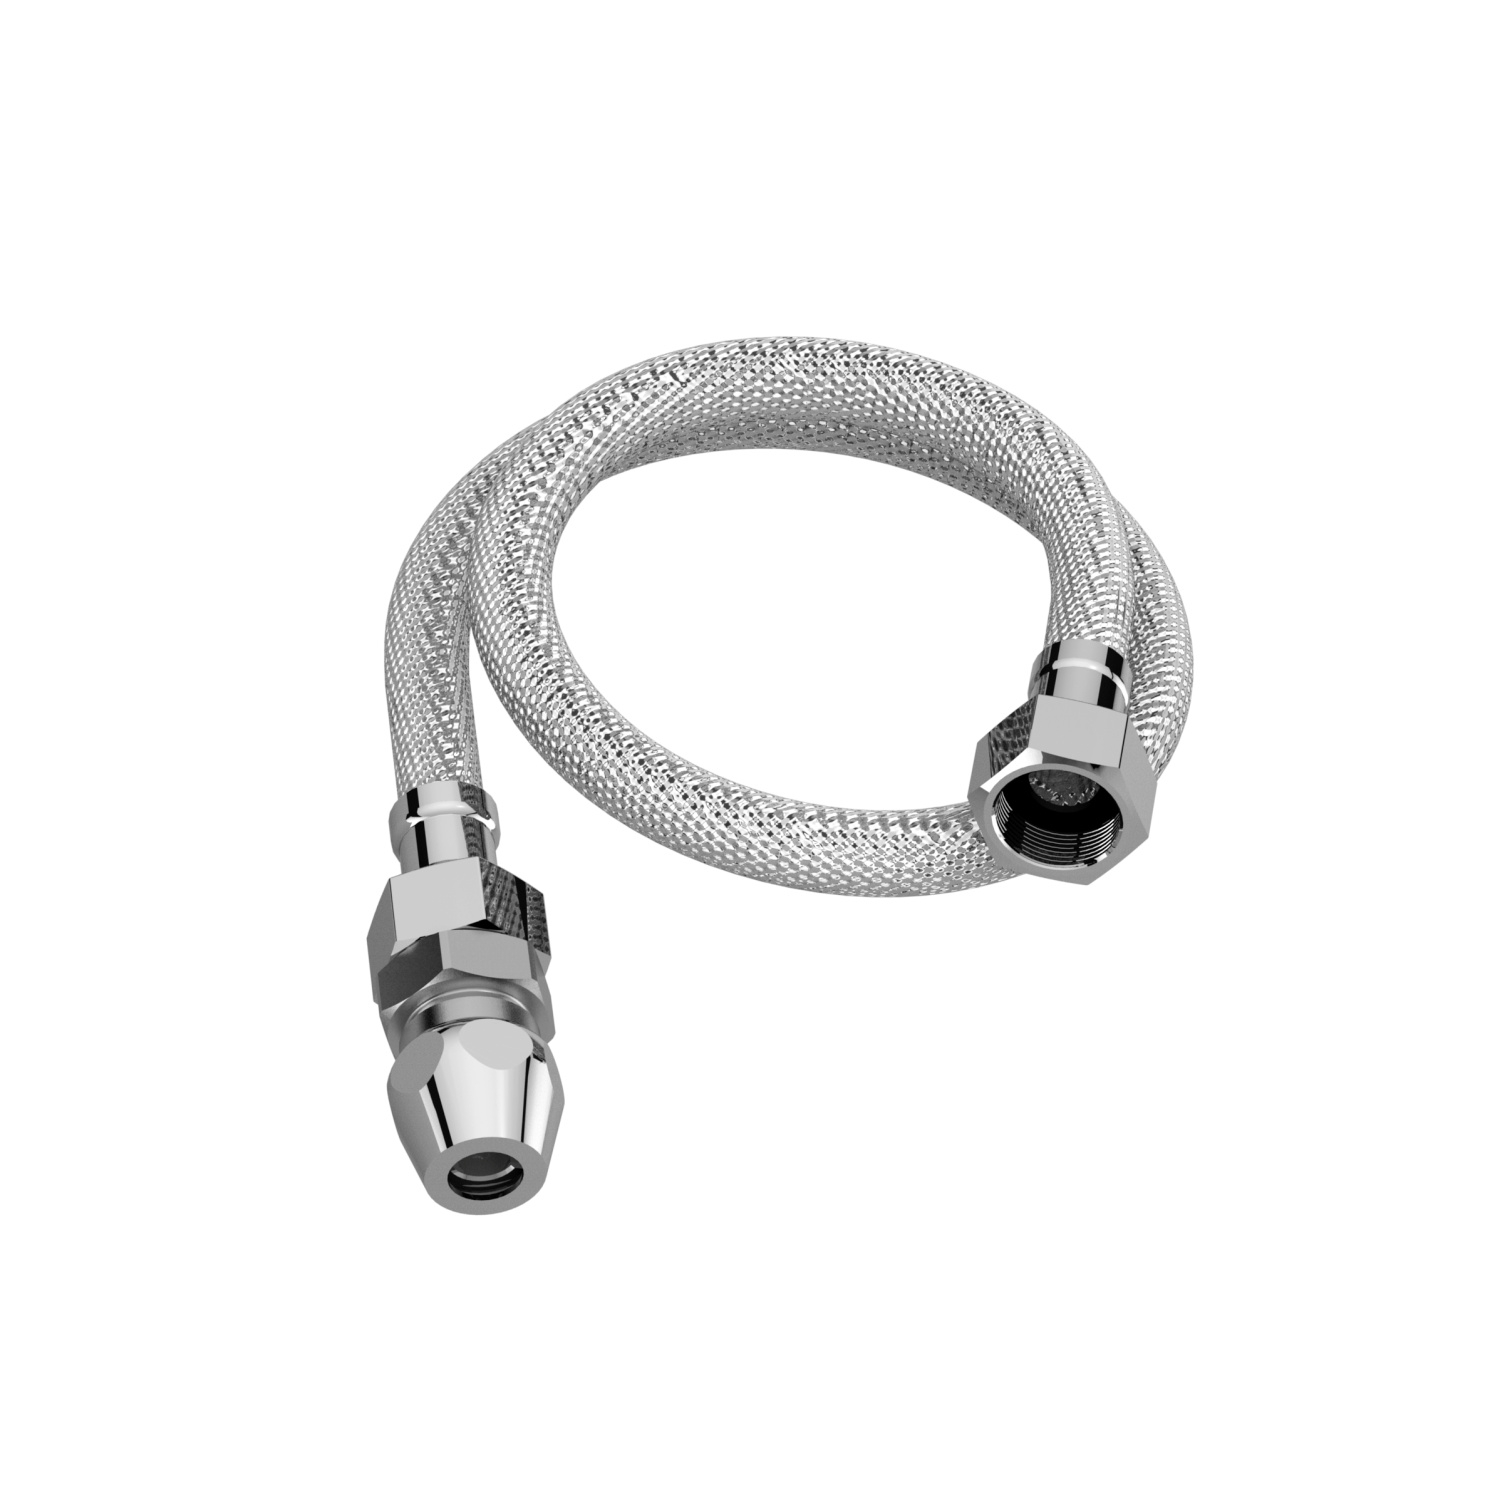 Hose extension - - 12 508 970 90